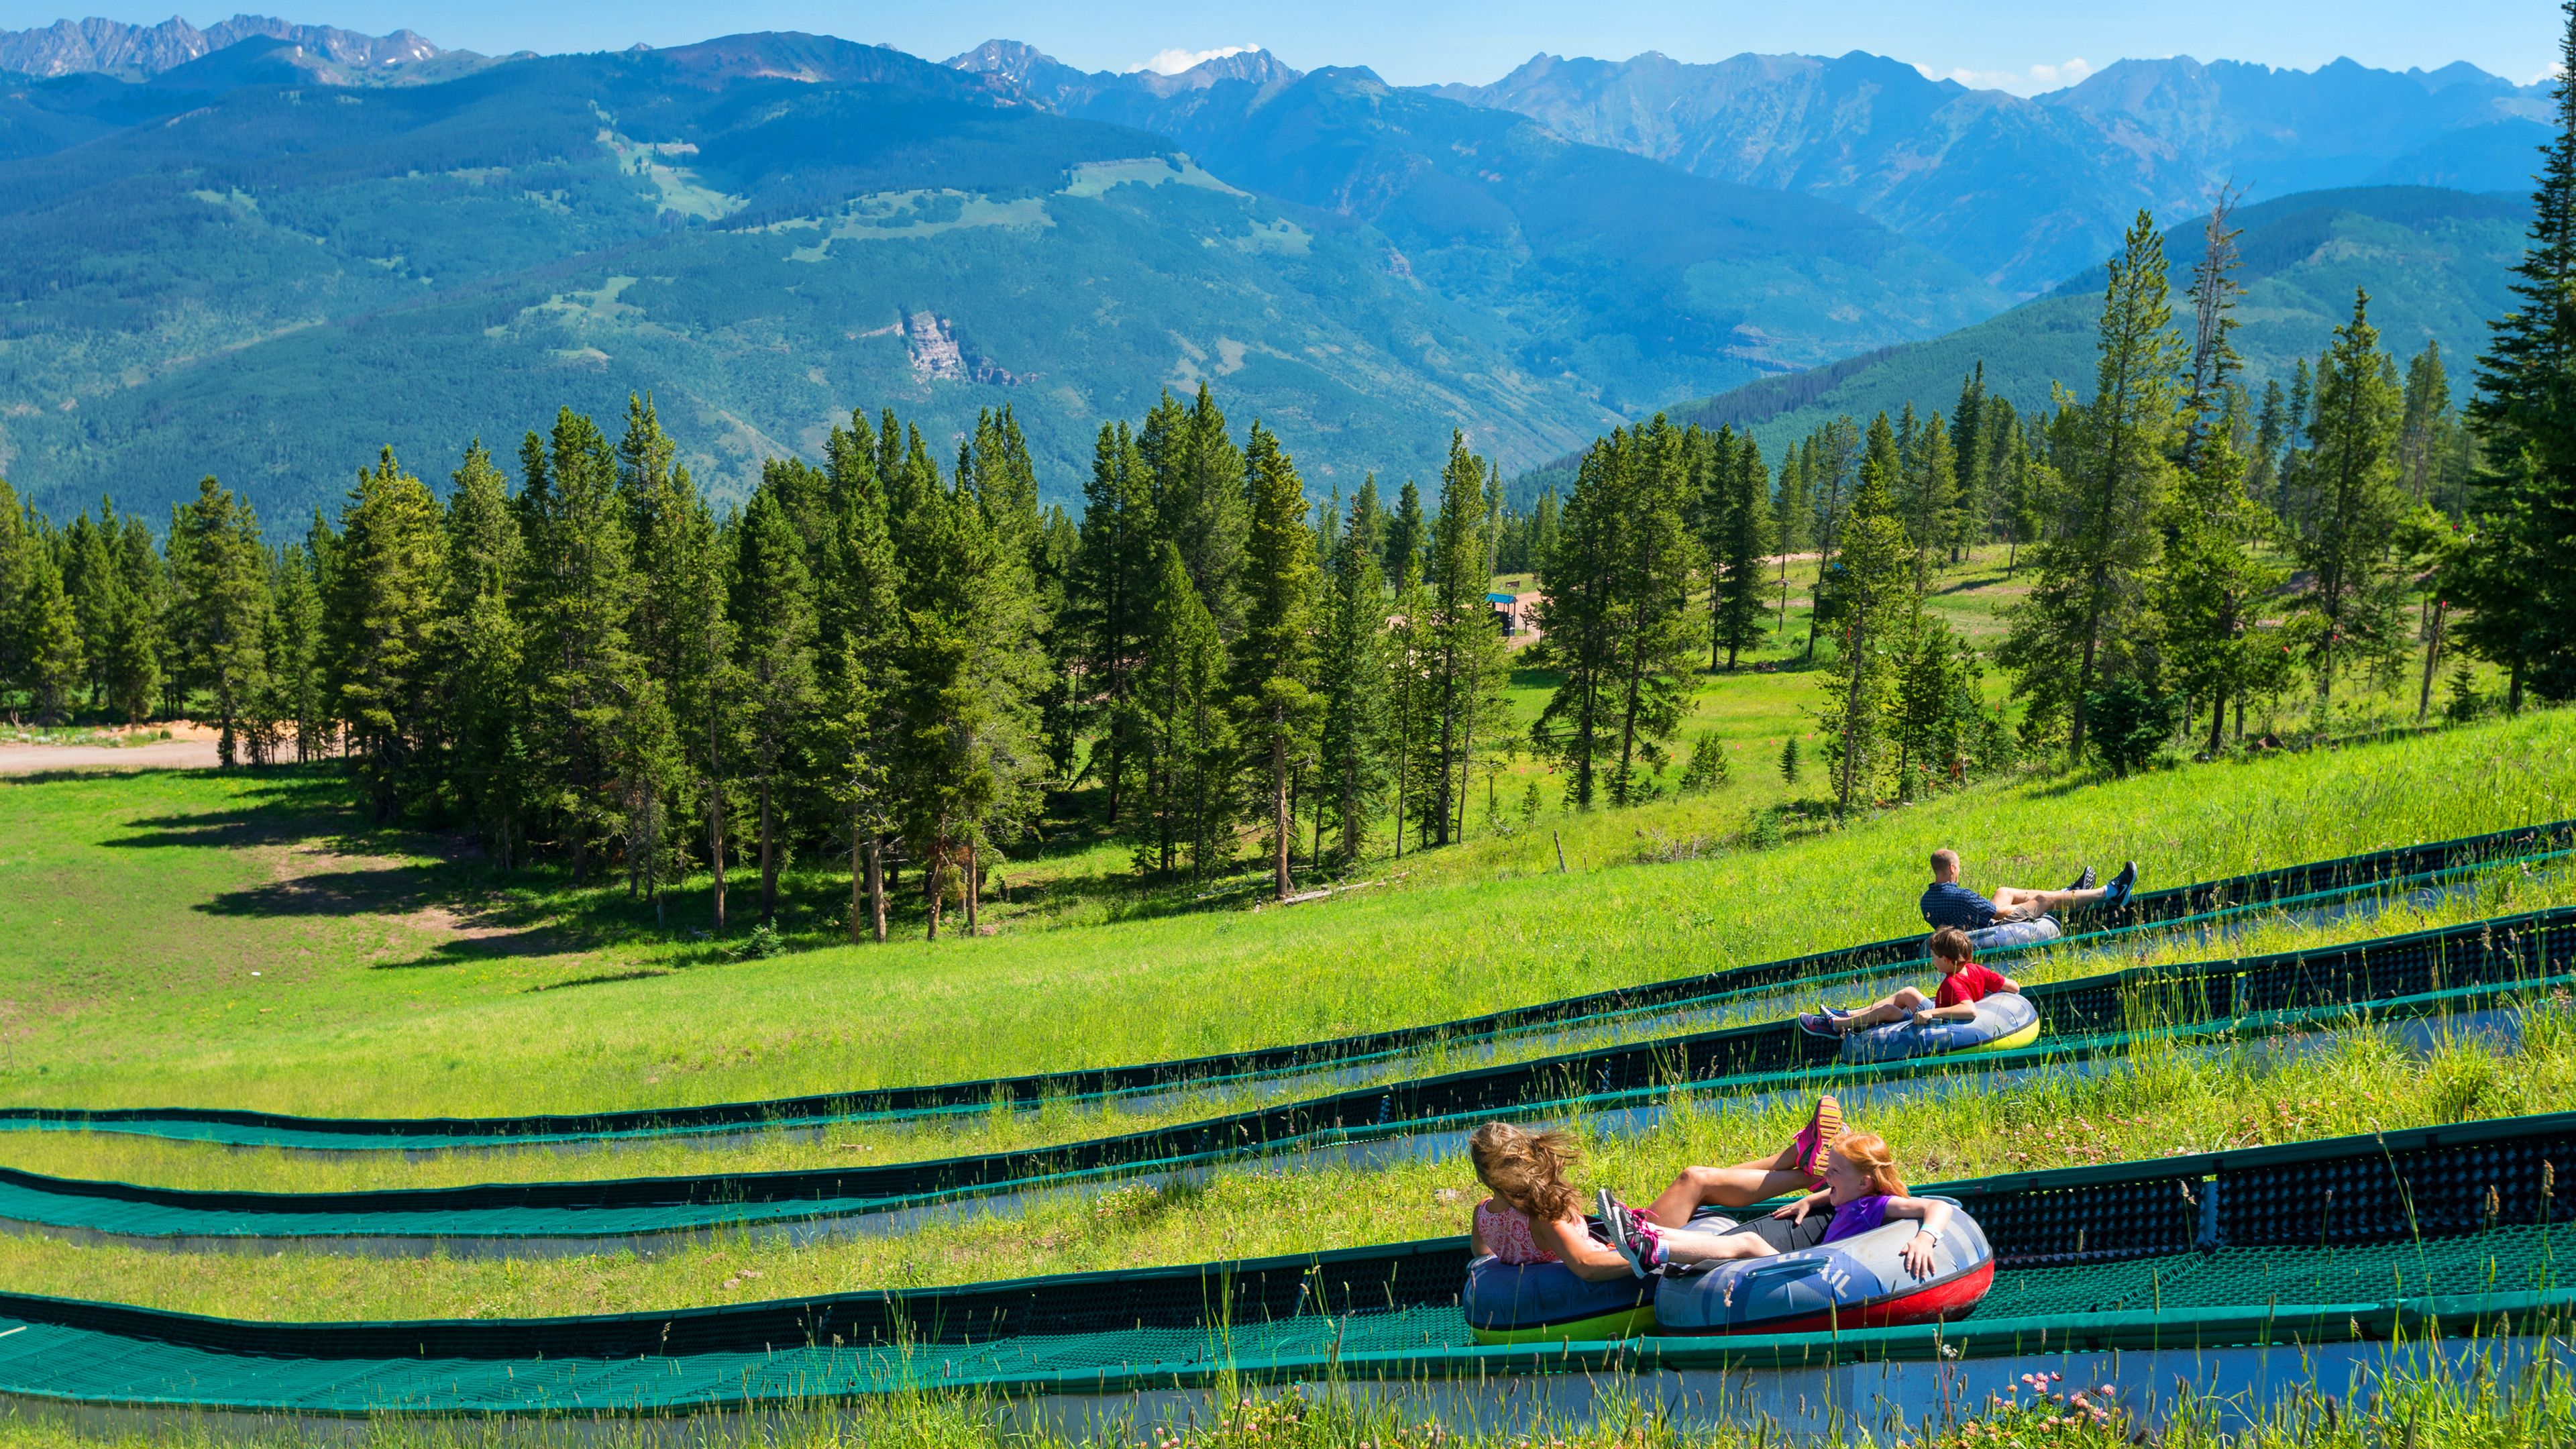 Groups of people tubing down a mountain in the Rockies in the summer